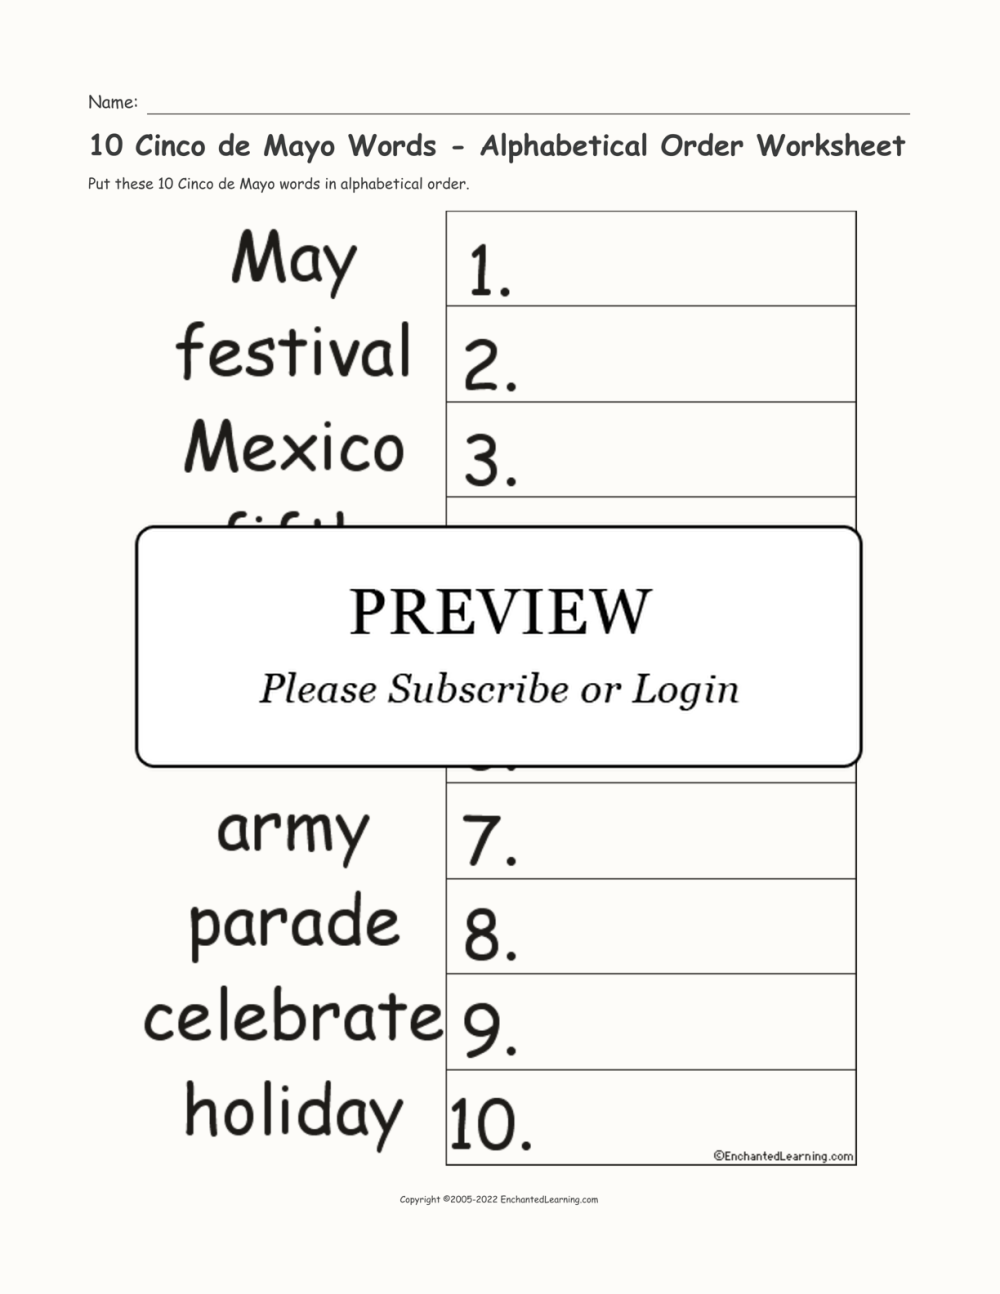 medium resolution of Free Cinco De Mayo Worksheets 2nd Grade   Printable Worksheets and  Activities for Teachers